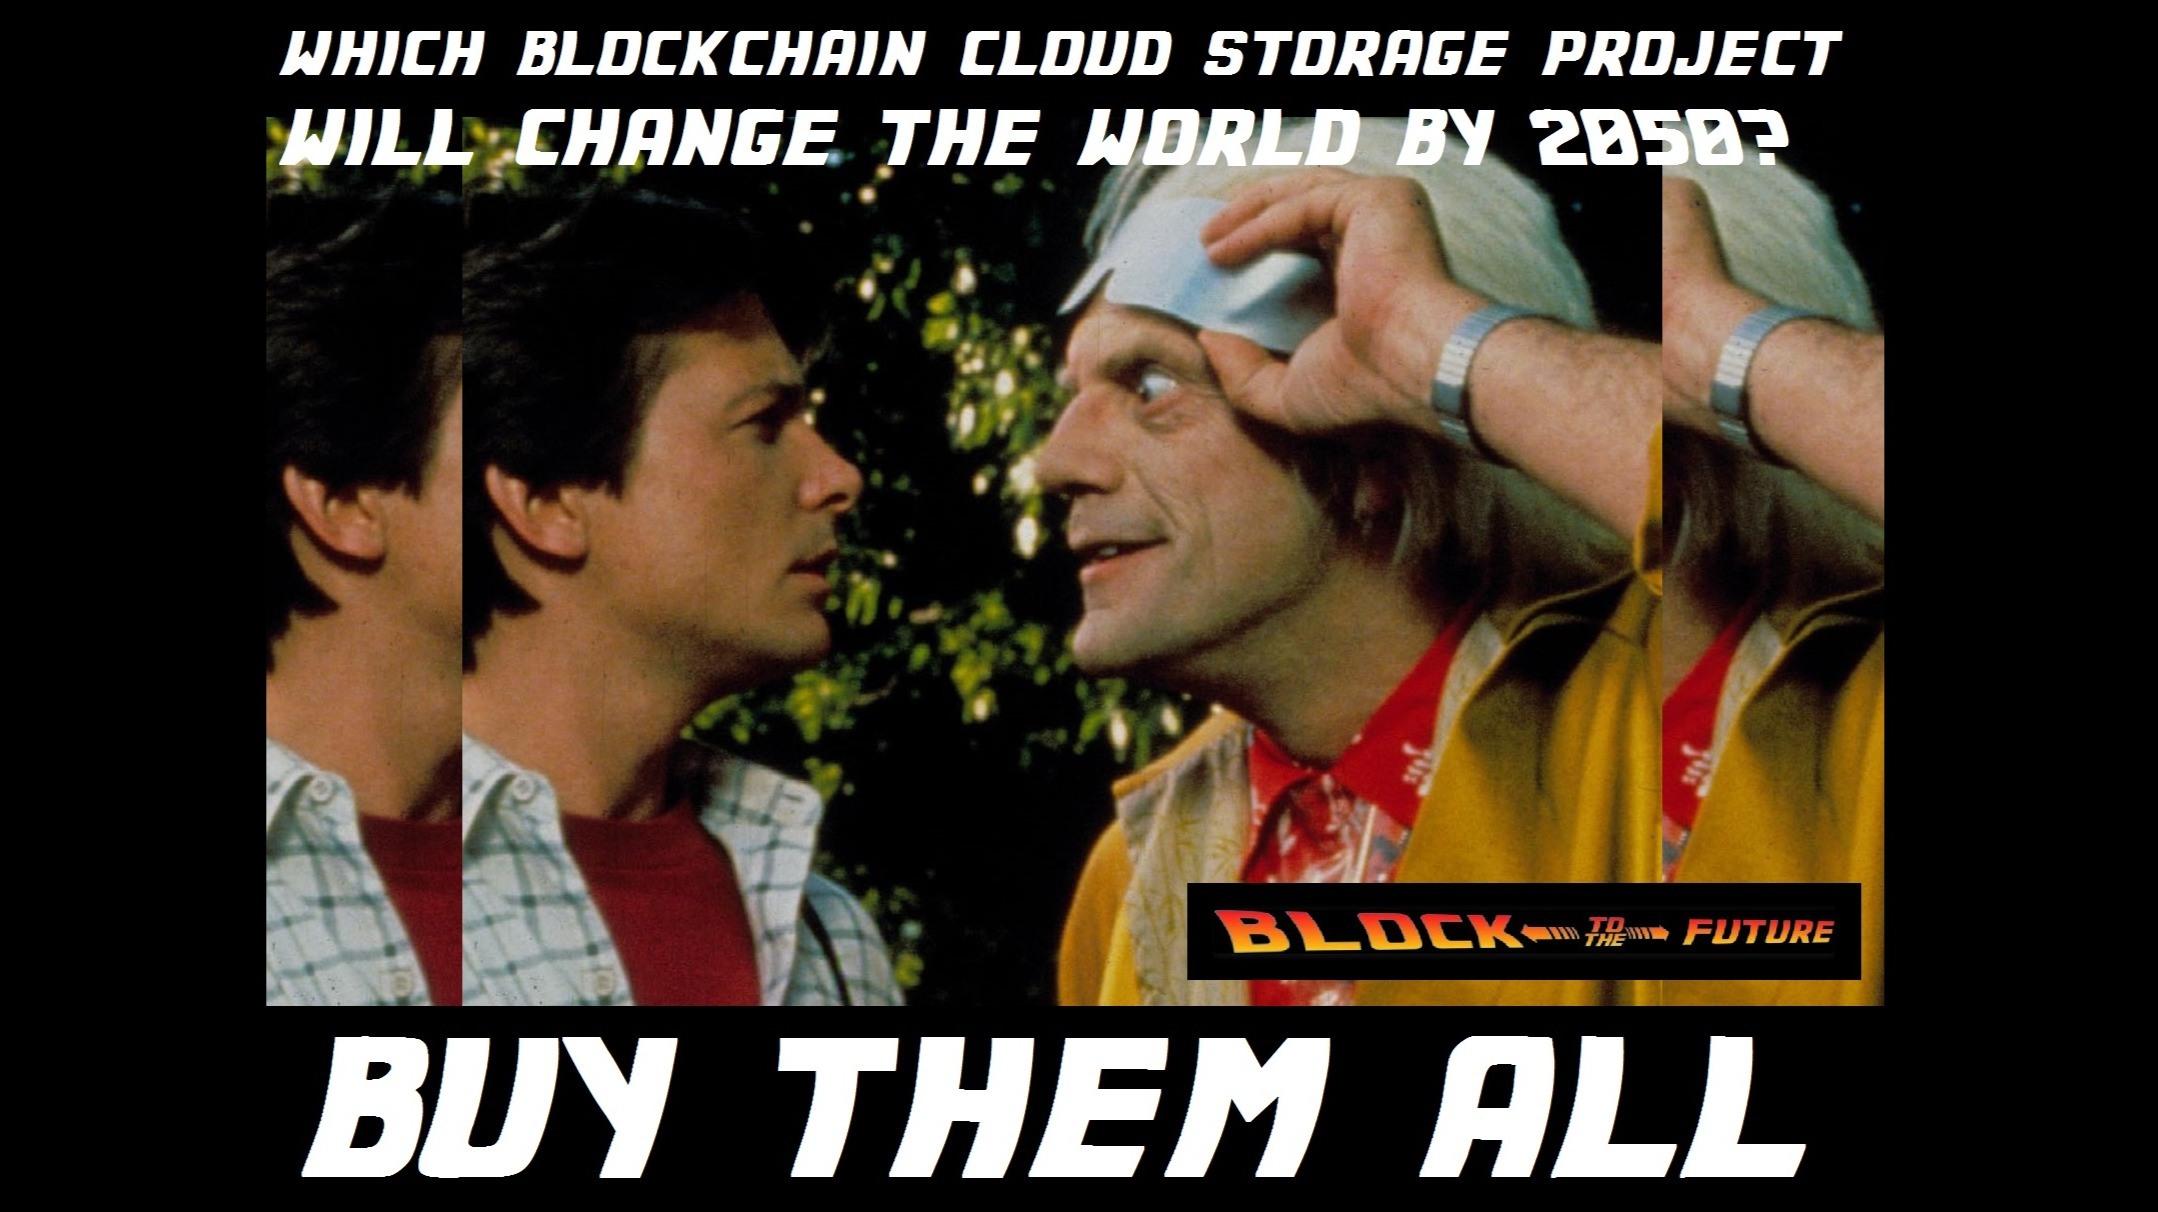 which blockchain cloud project will change the world by 2050. Buy them all.